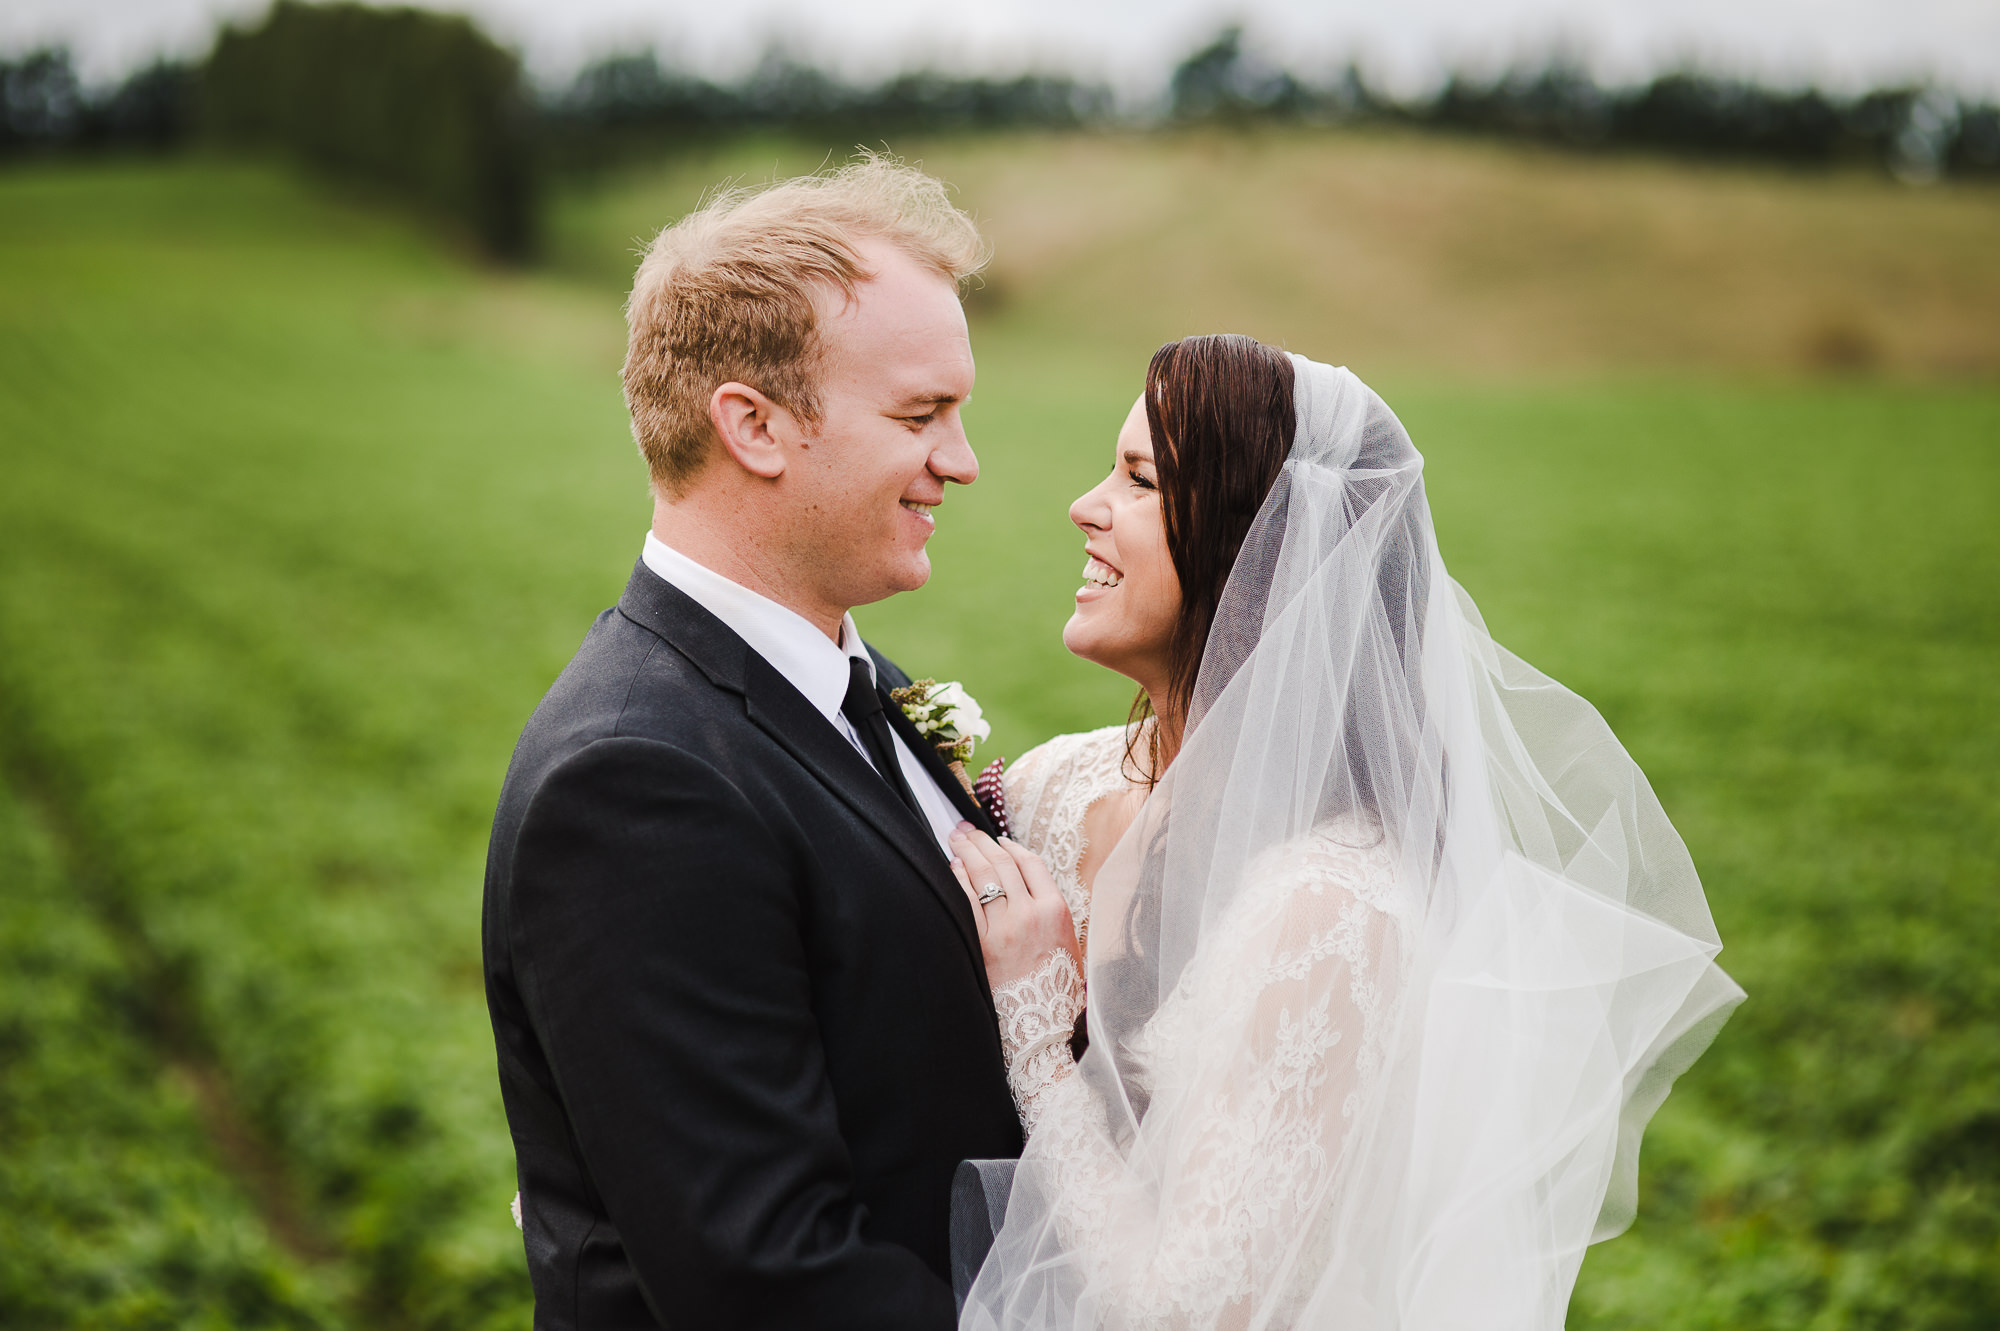 intimate close up portrait of wedding couple.jpg